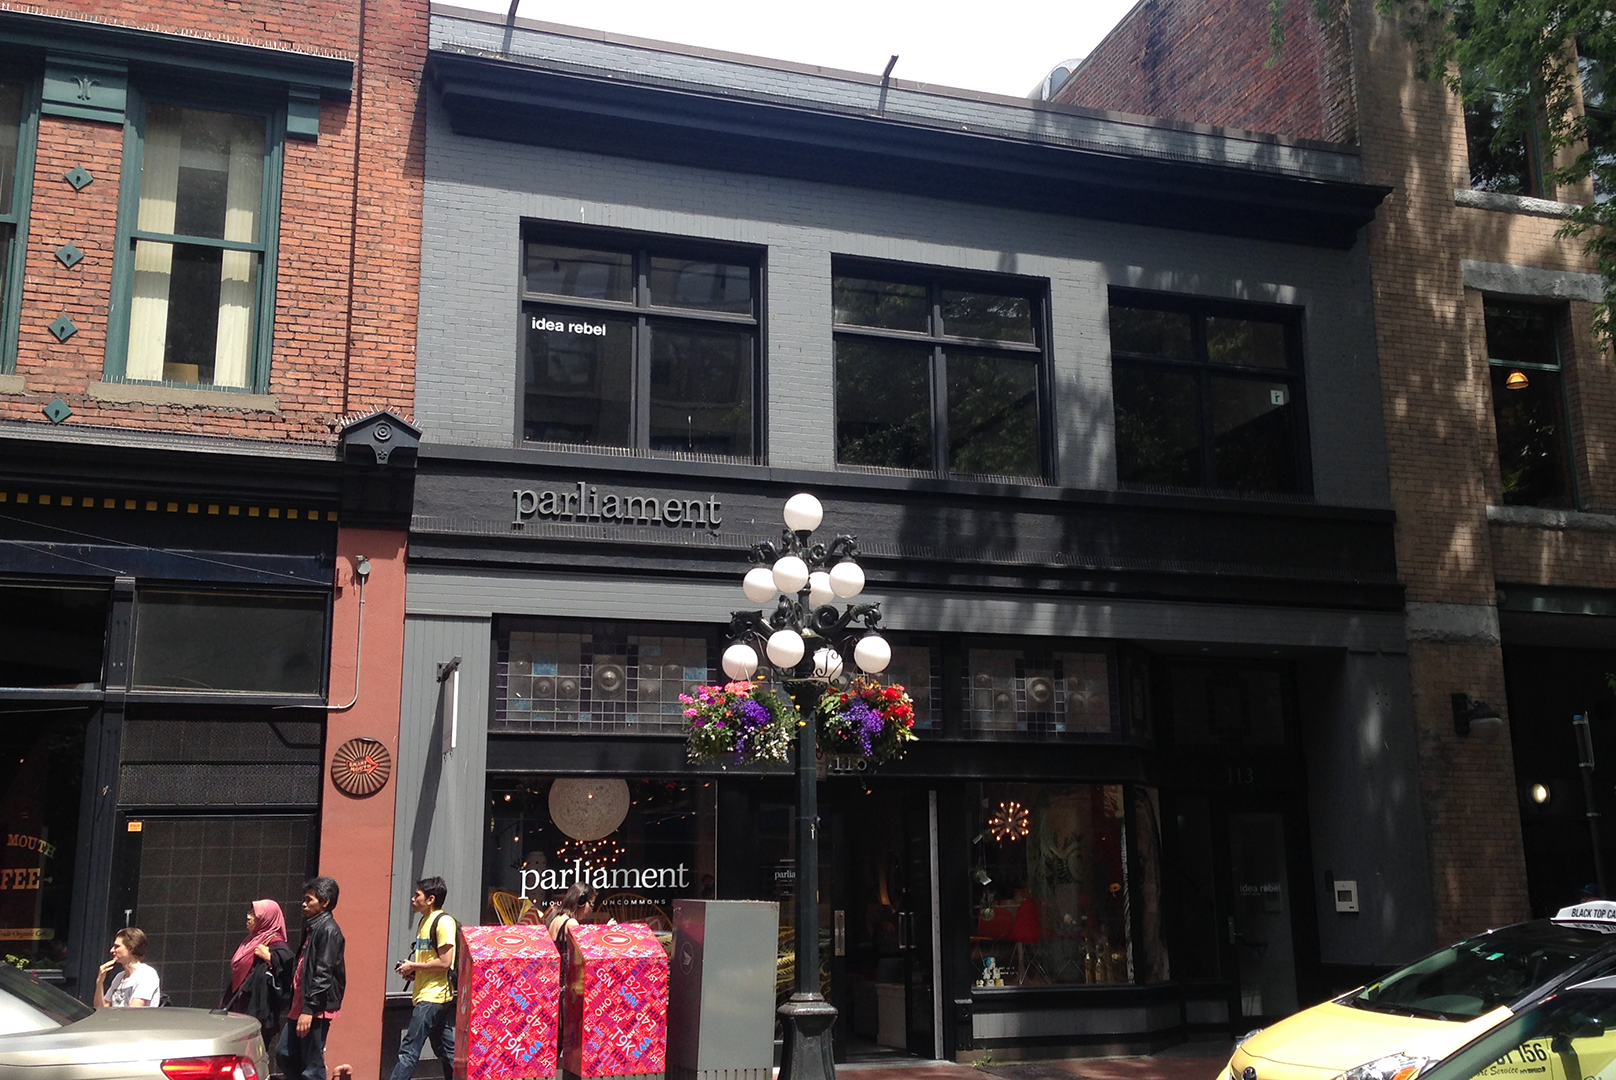 Working in Gastown: A Day in the Life 3